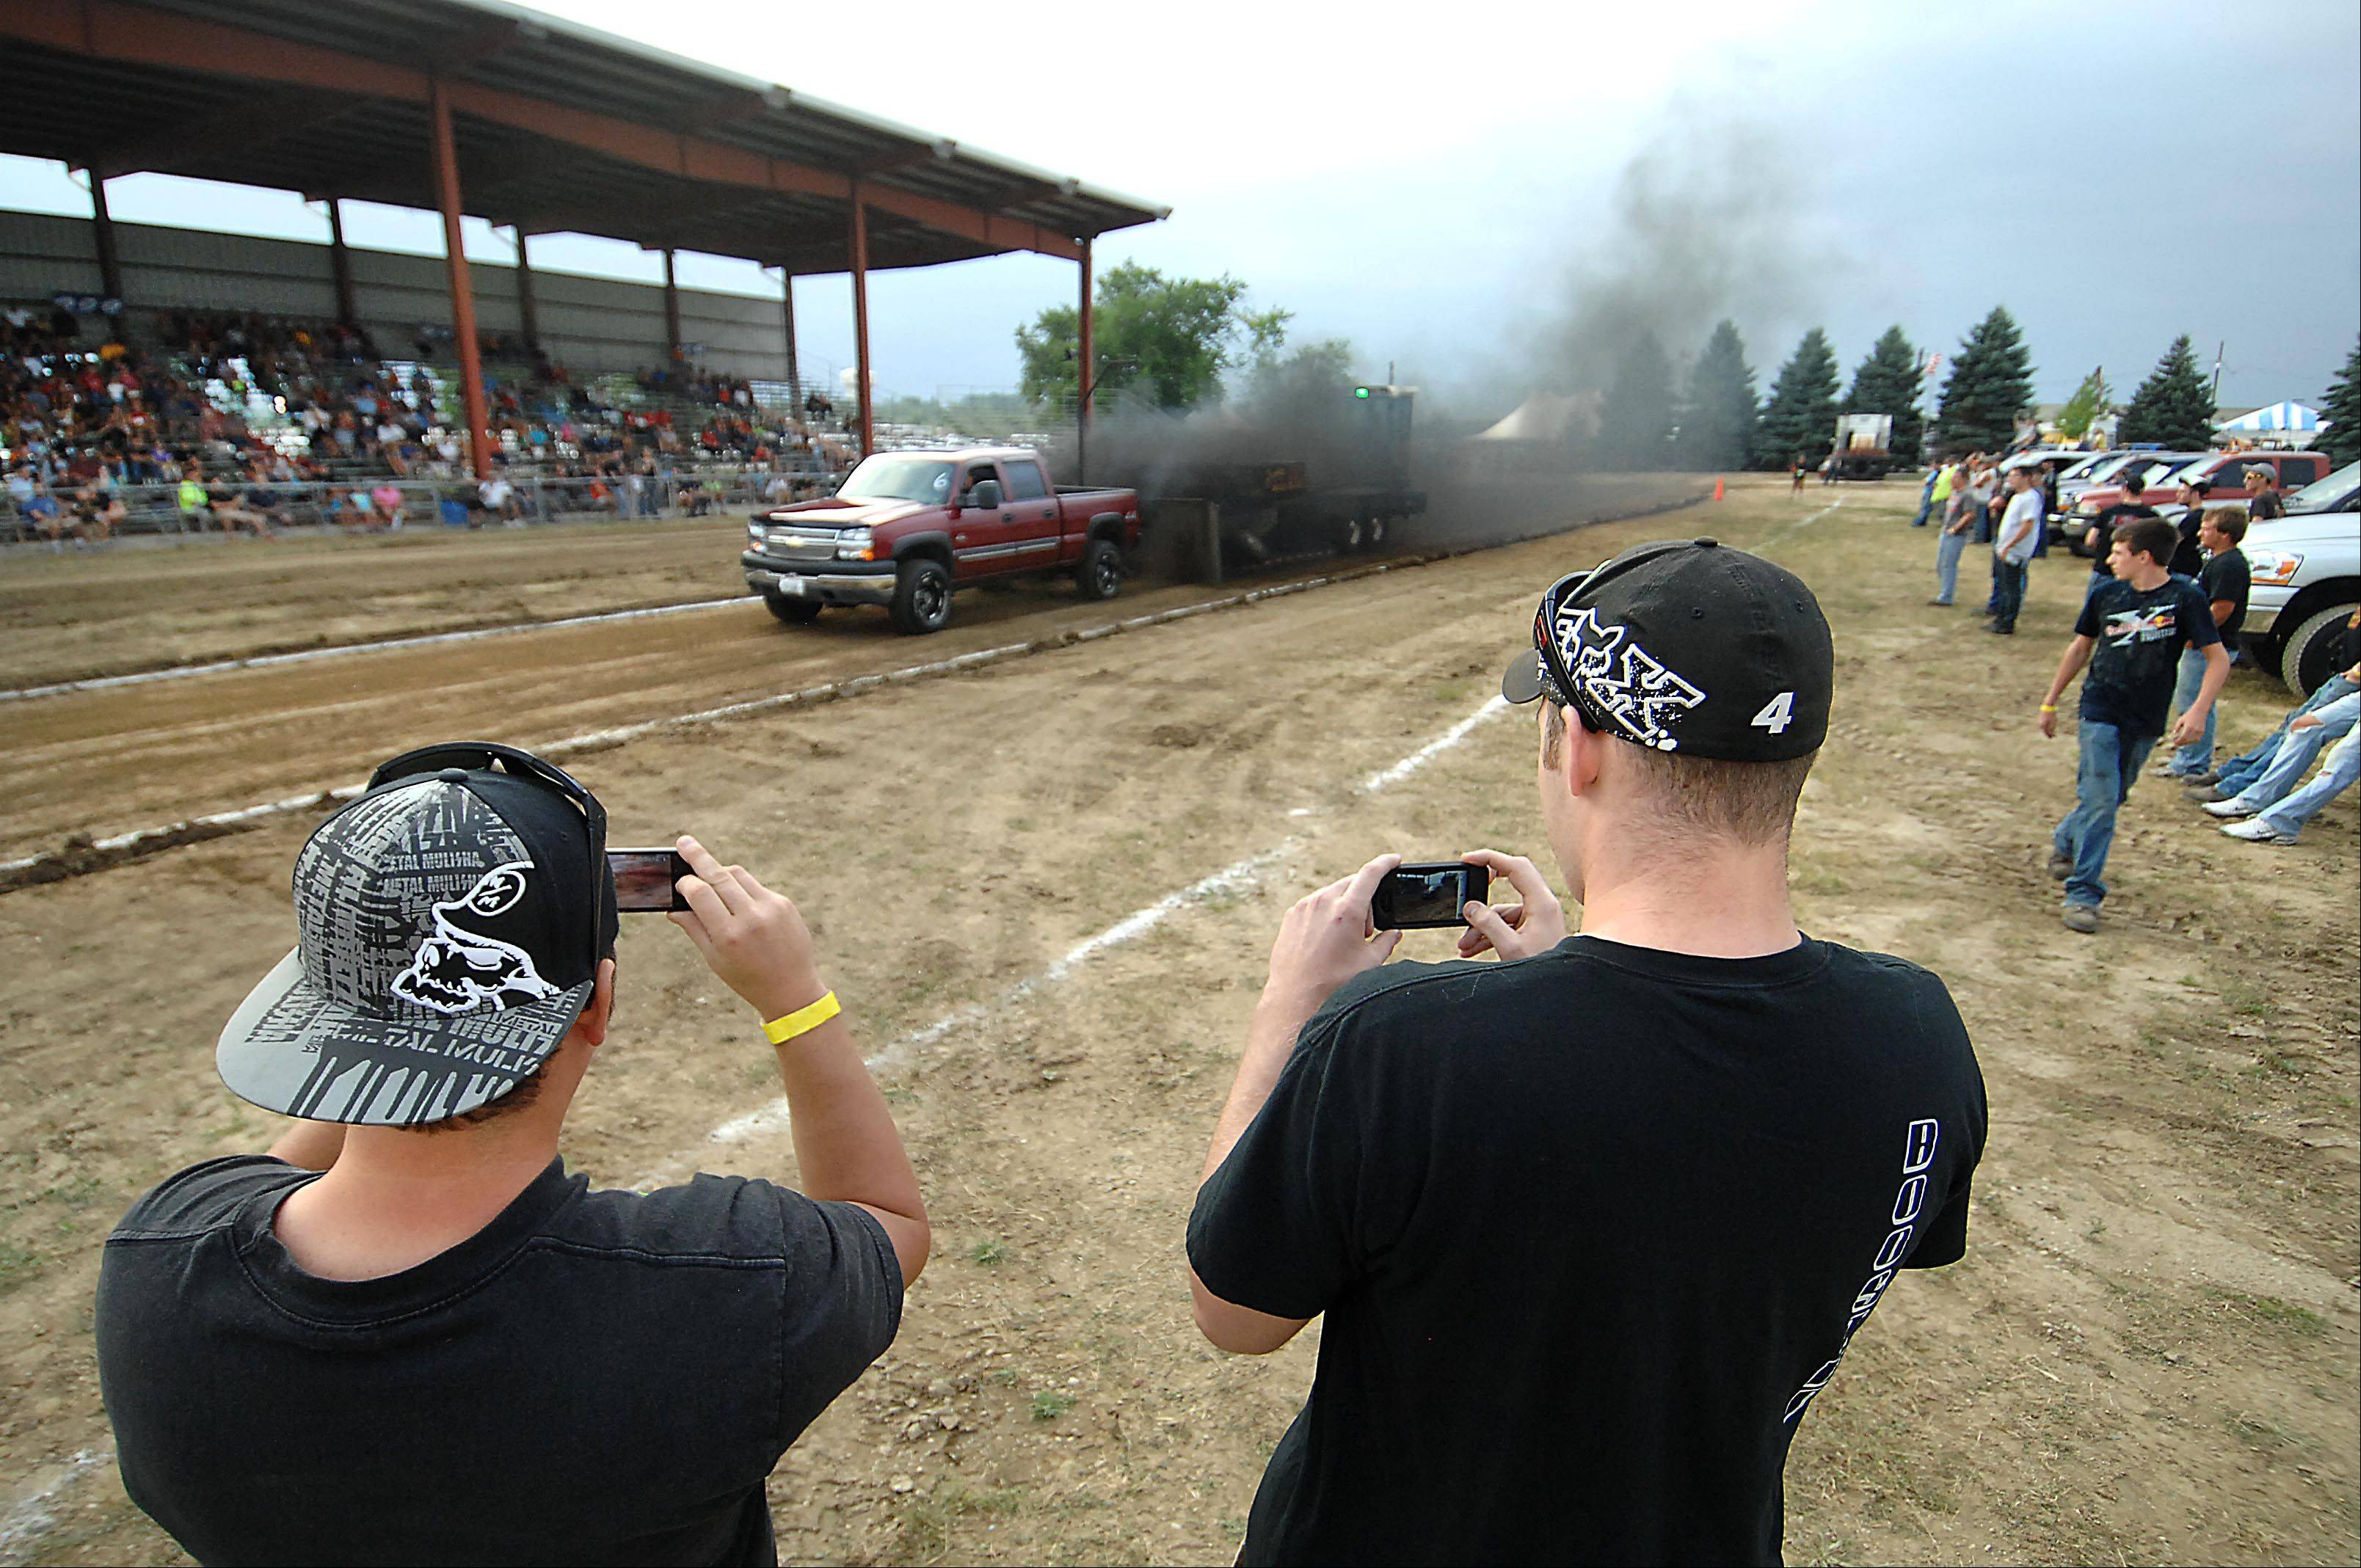 A diesel pickup blows black smoke as it pulls the sled down the 260-foot track during a Truck Pull competition at the Kane County Fair Thursday in St. Charles.